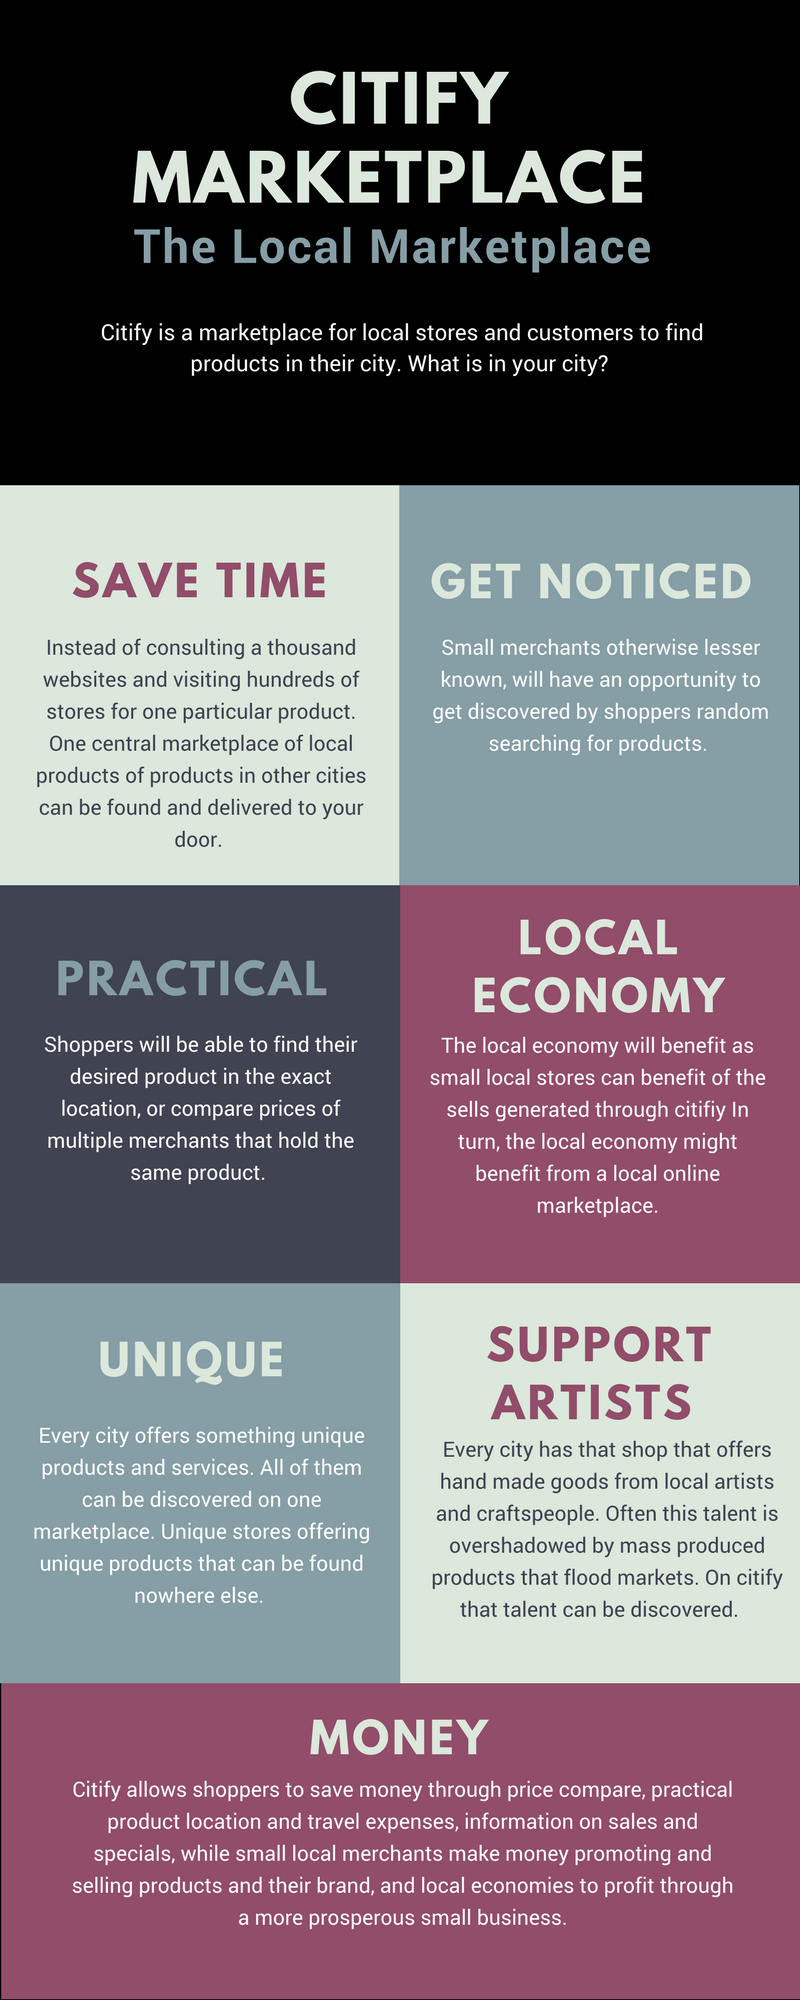 Info on the benefits of a local online marketplace like